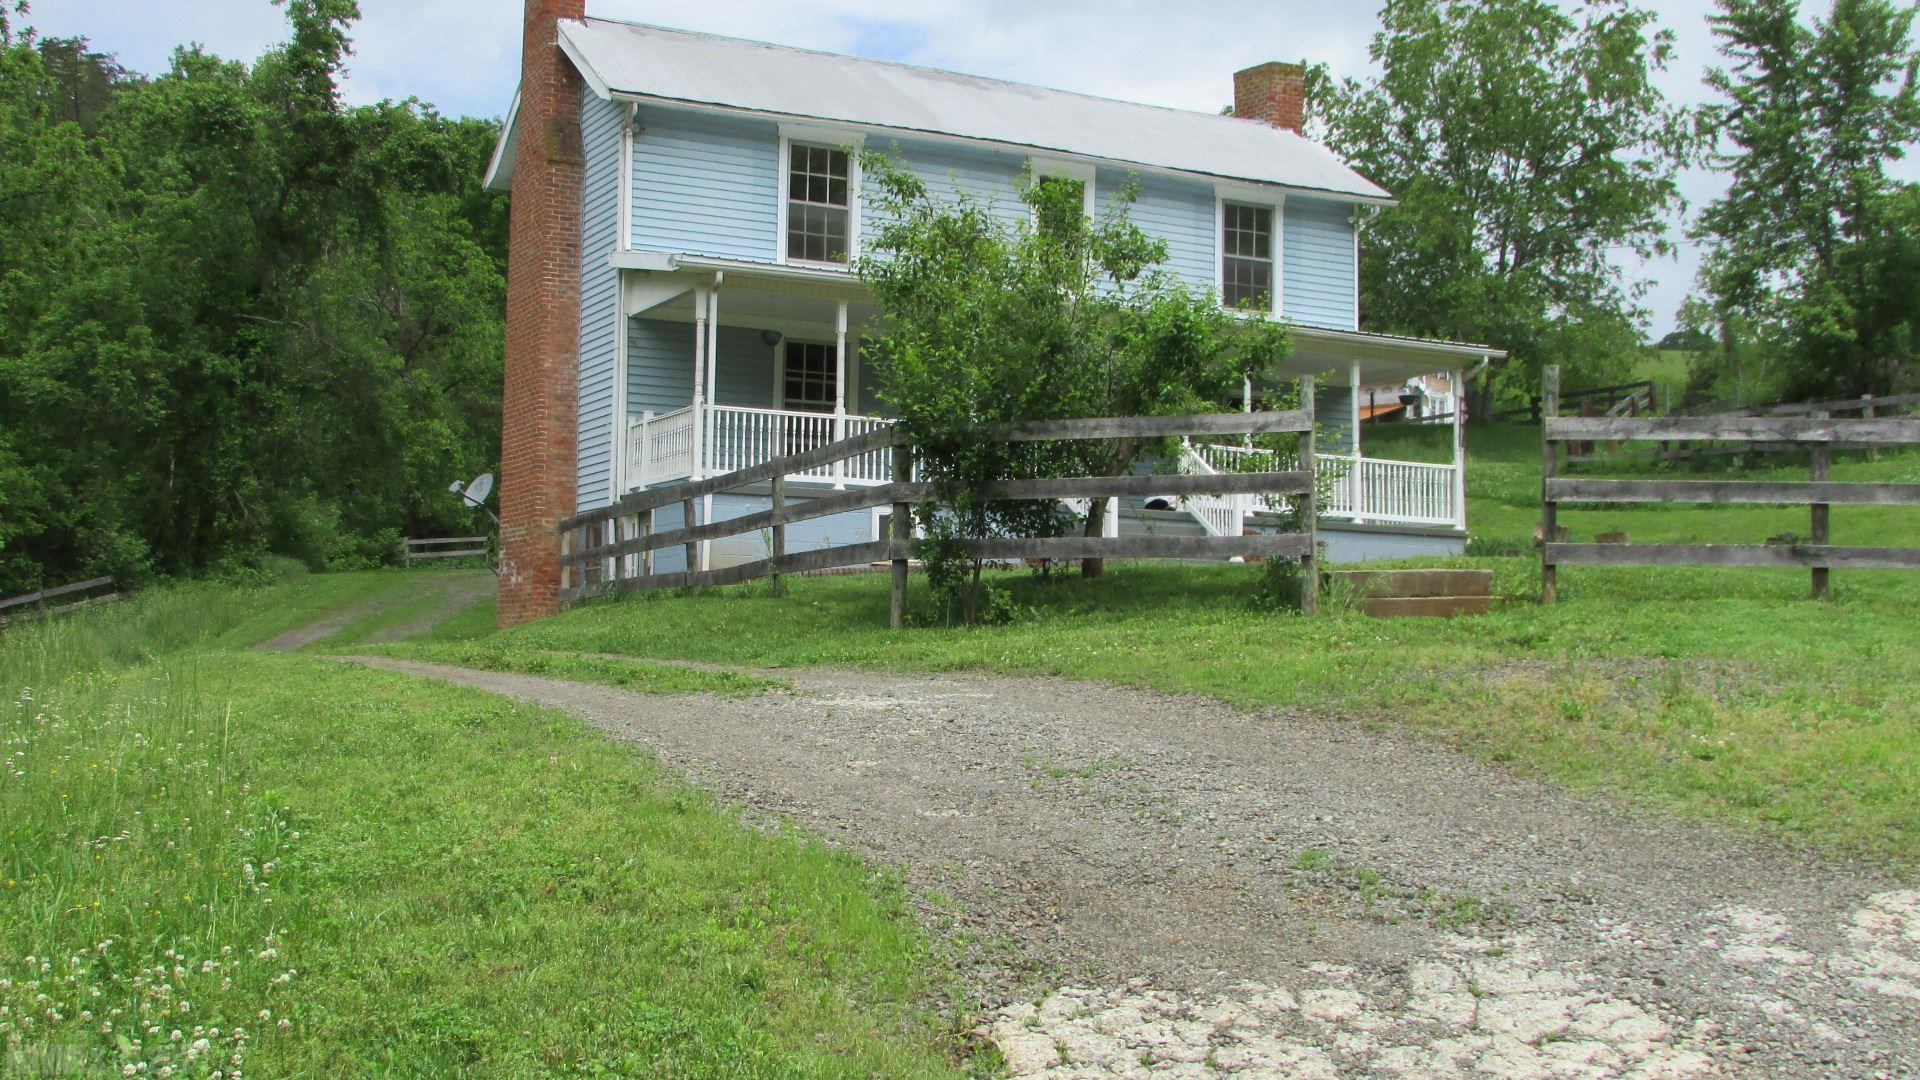 Large farm house  with 21.15 acres of land. Part of land is used for hay. Has a pole barn with a finished room .Another pole shed for shelter for your horses. Located only 3 miles from I-81.Fireplace in the family room. This house need some TLC. Owner is in the process of cleaning out the house and getting the mowing done. THE HOUSE IS BEING SOLD  IN AS IS CONDITION. TAKE A LOOK AND SEE ALL OF THE GREAT POSSIBILITIES THAT ARE HERE. The would make a great horse farm. The owner had horses for many years. Located only 3 miles from I-81.